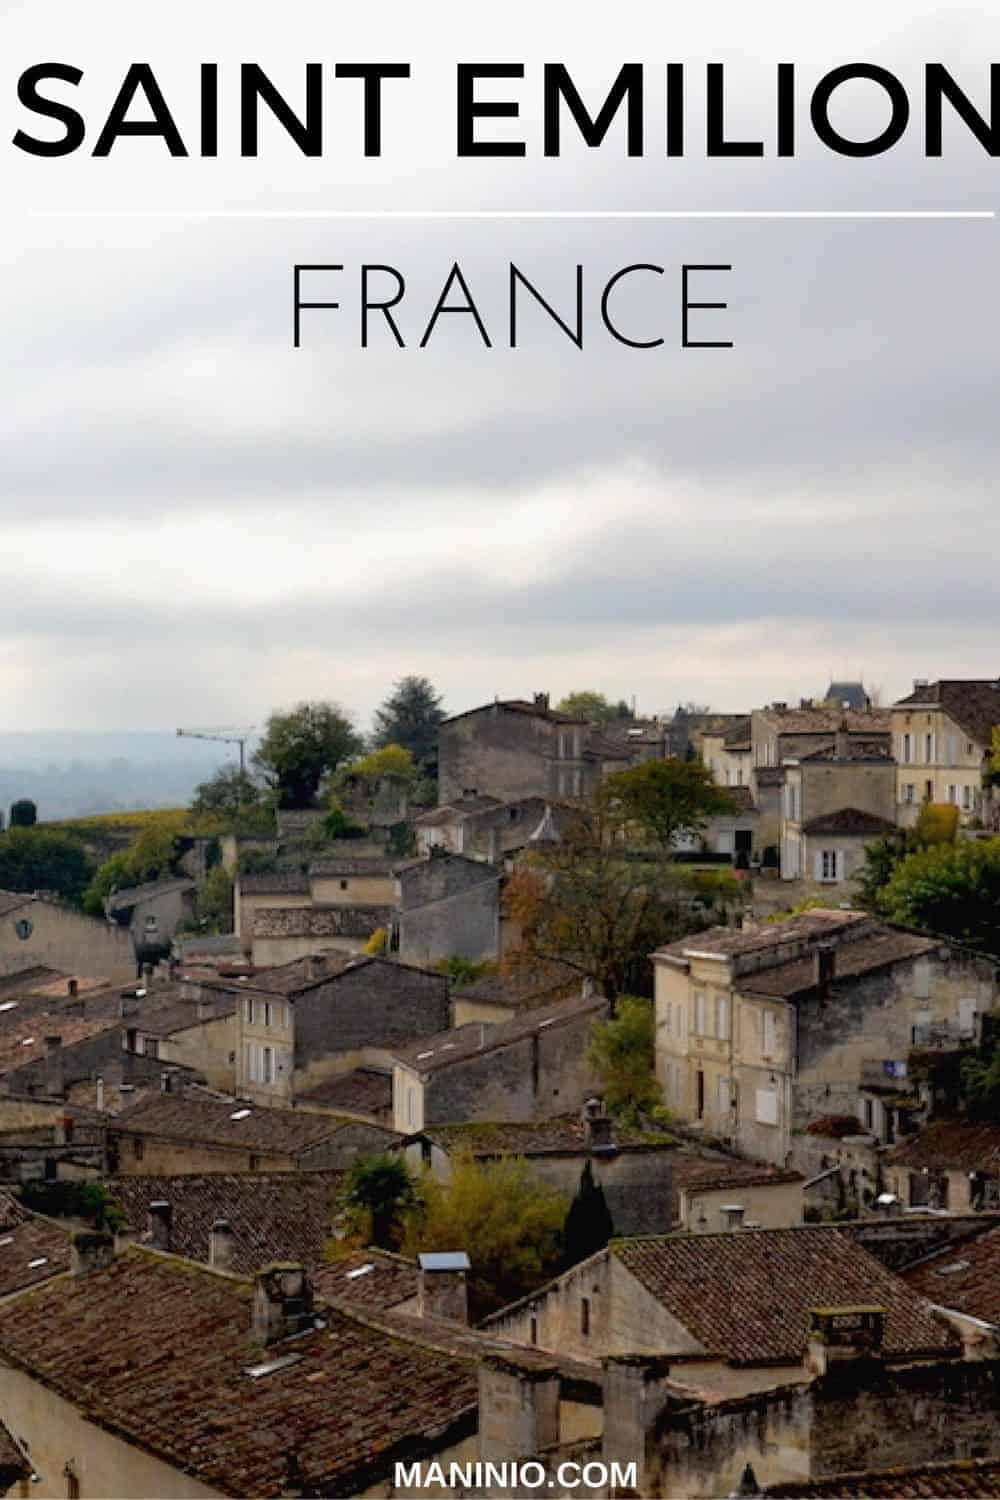 A day in Saint Emilion – France